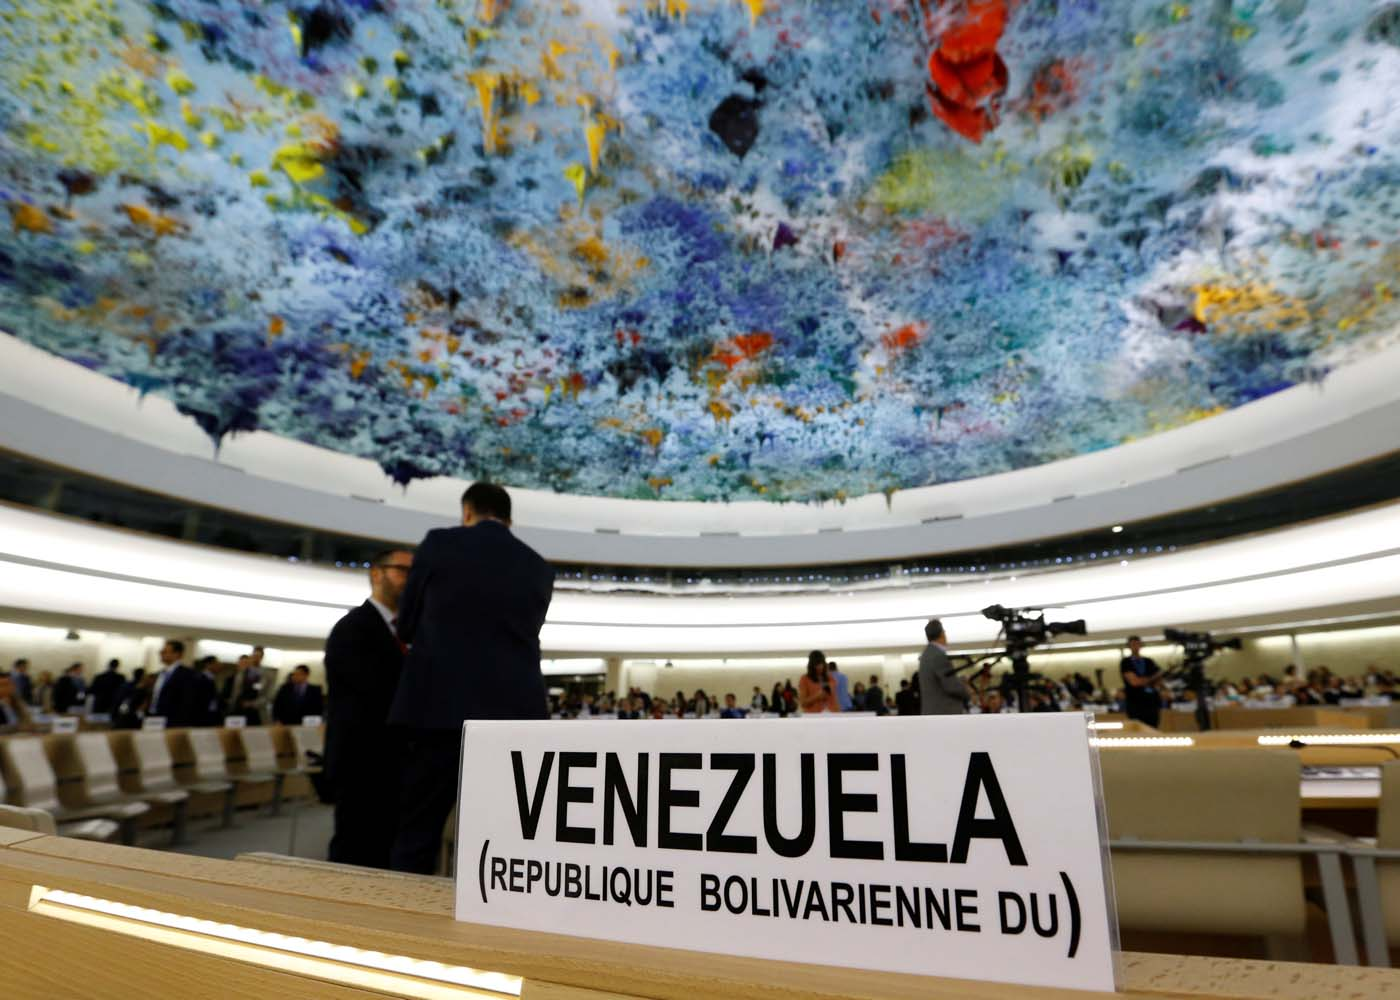 The name place sign of Venezuela is pictured on the country's desk at the 36th Session of the Human Rights Council at the United Nations in Geneva, Switzerland September 11, 2017. REUTERS/Denis Balibouse